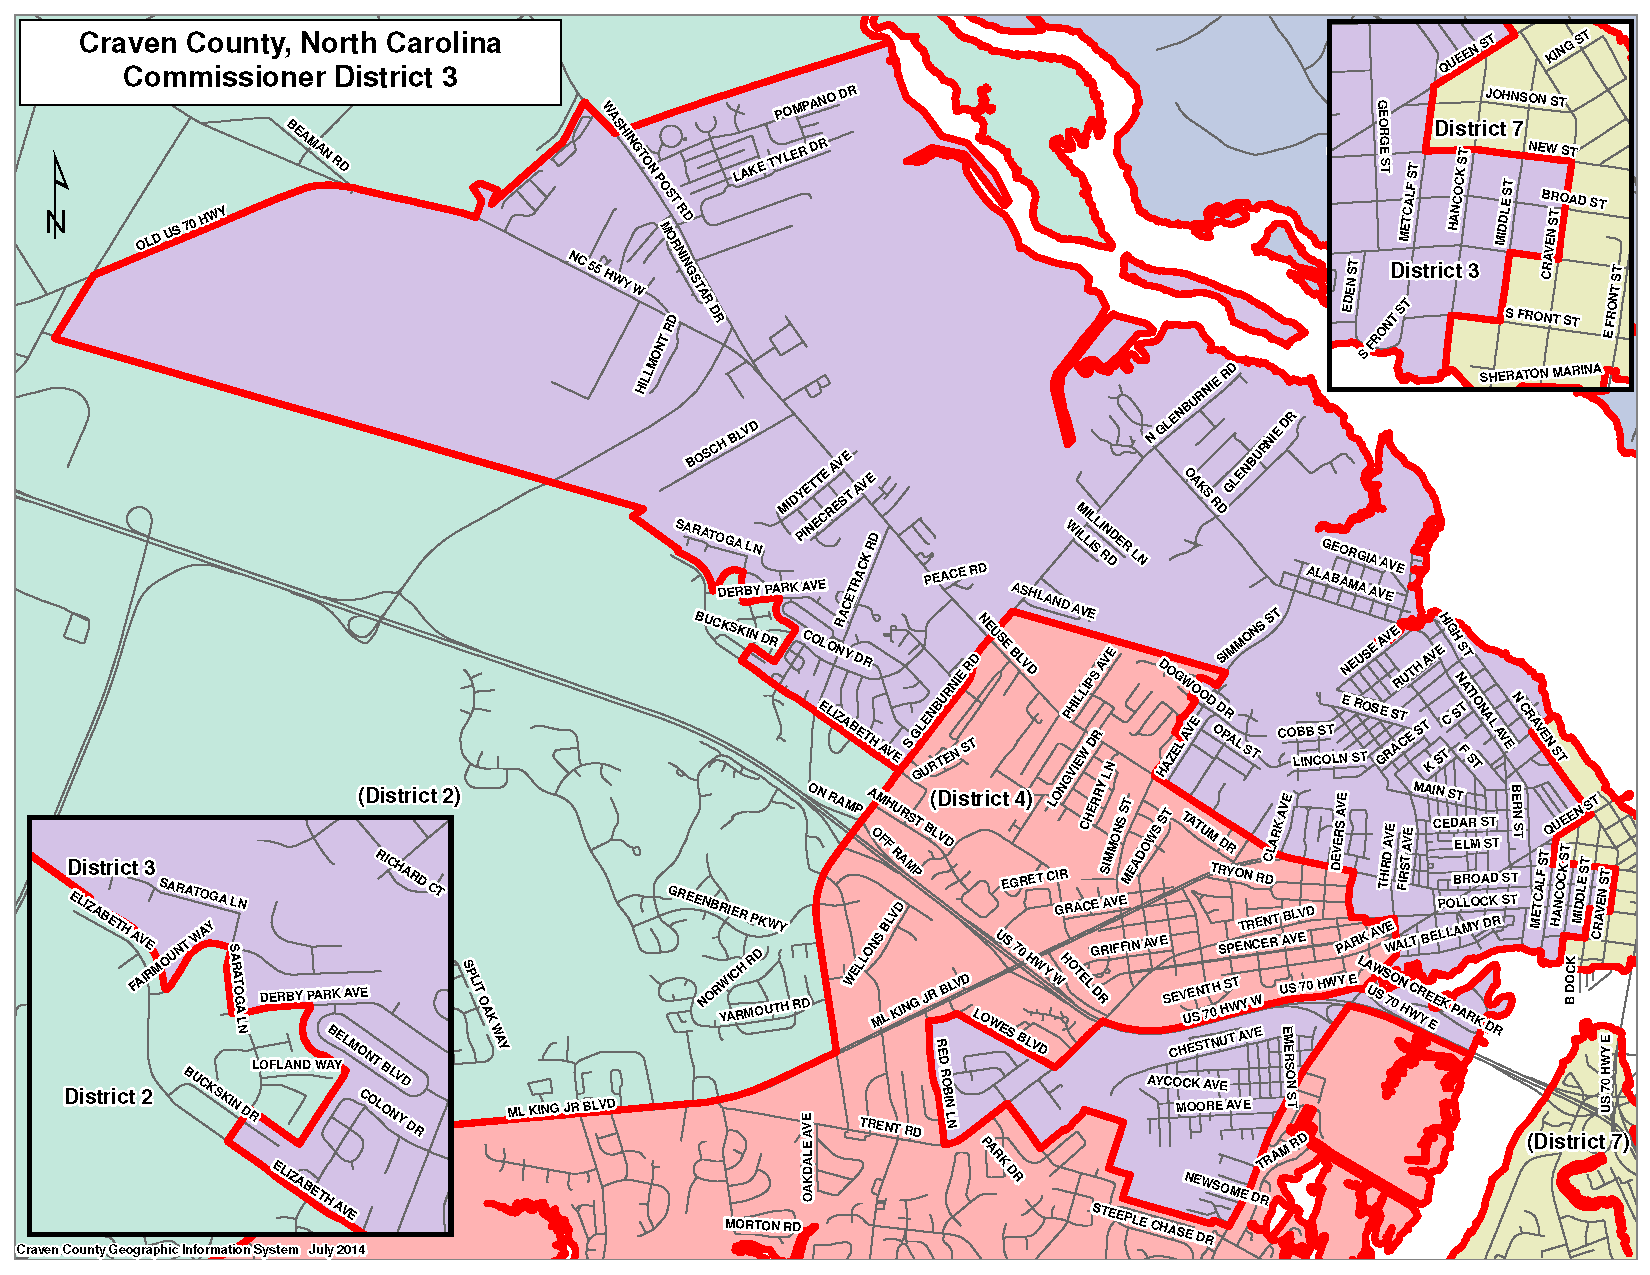 Commissioner District 3 Map